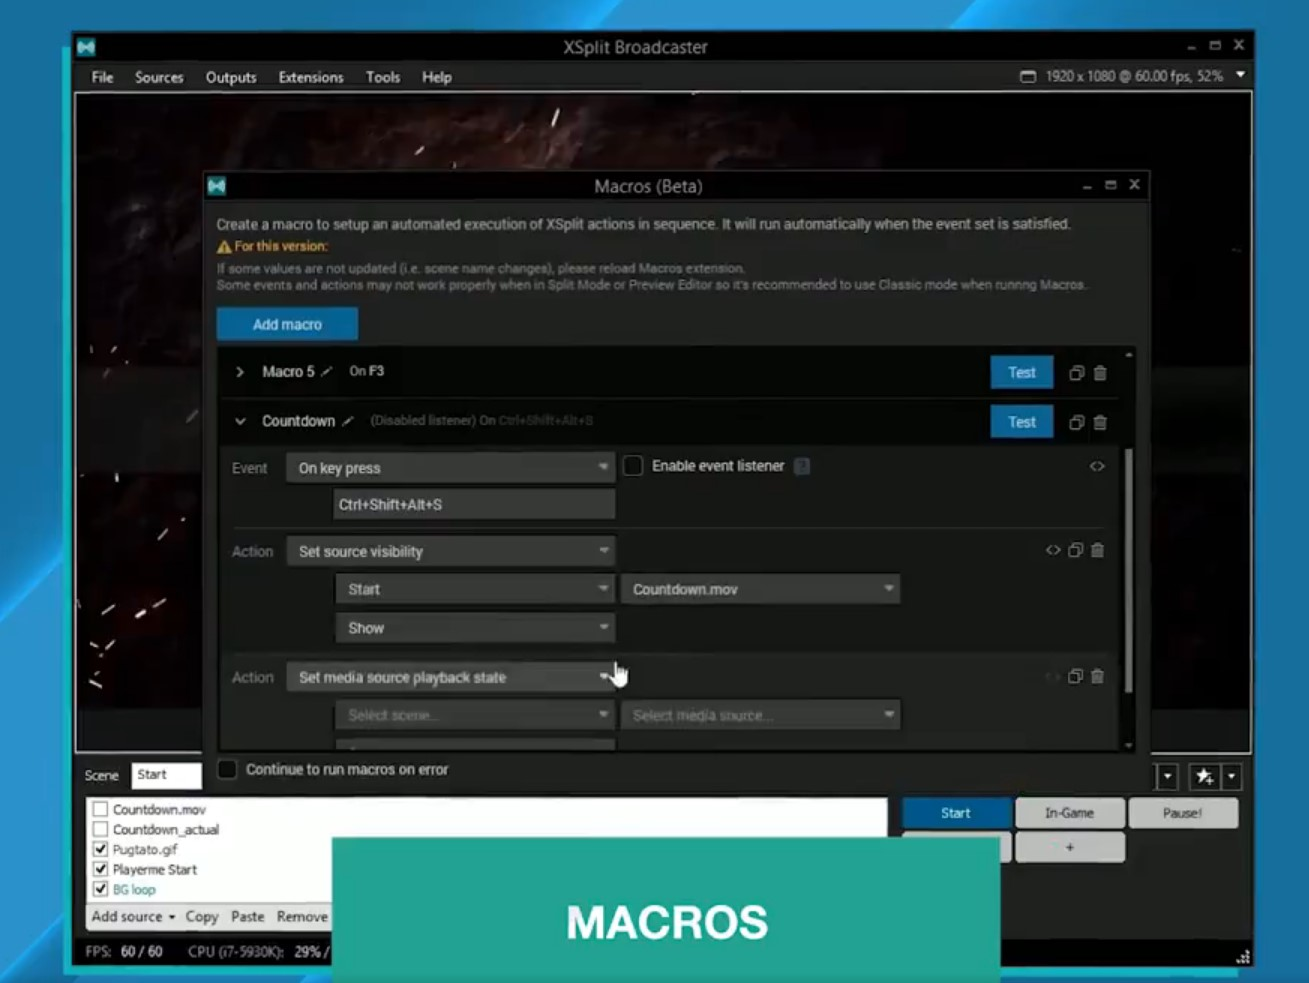 XSplit v3 3 Update Adds Macros, Multitrack Audio